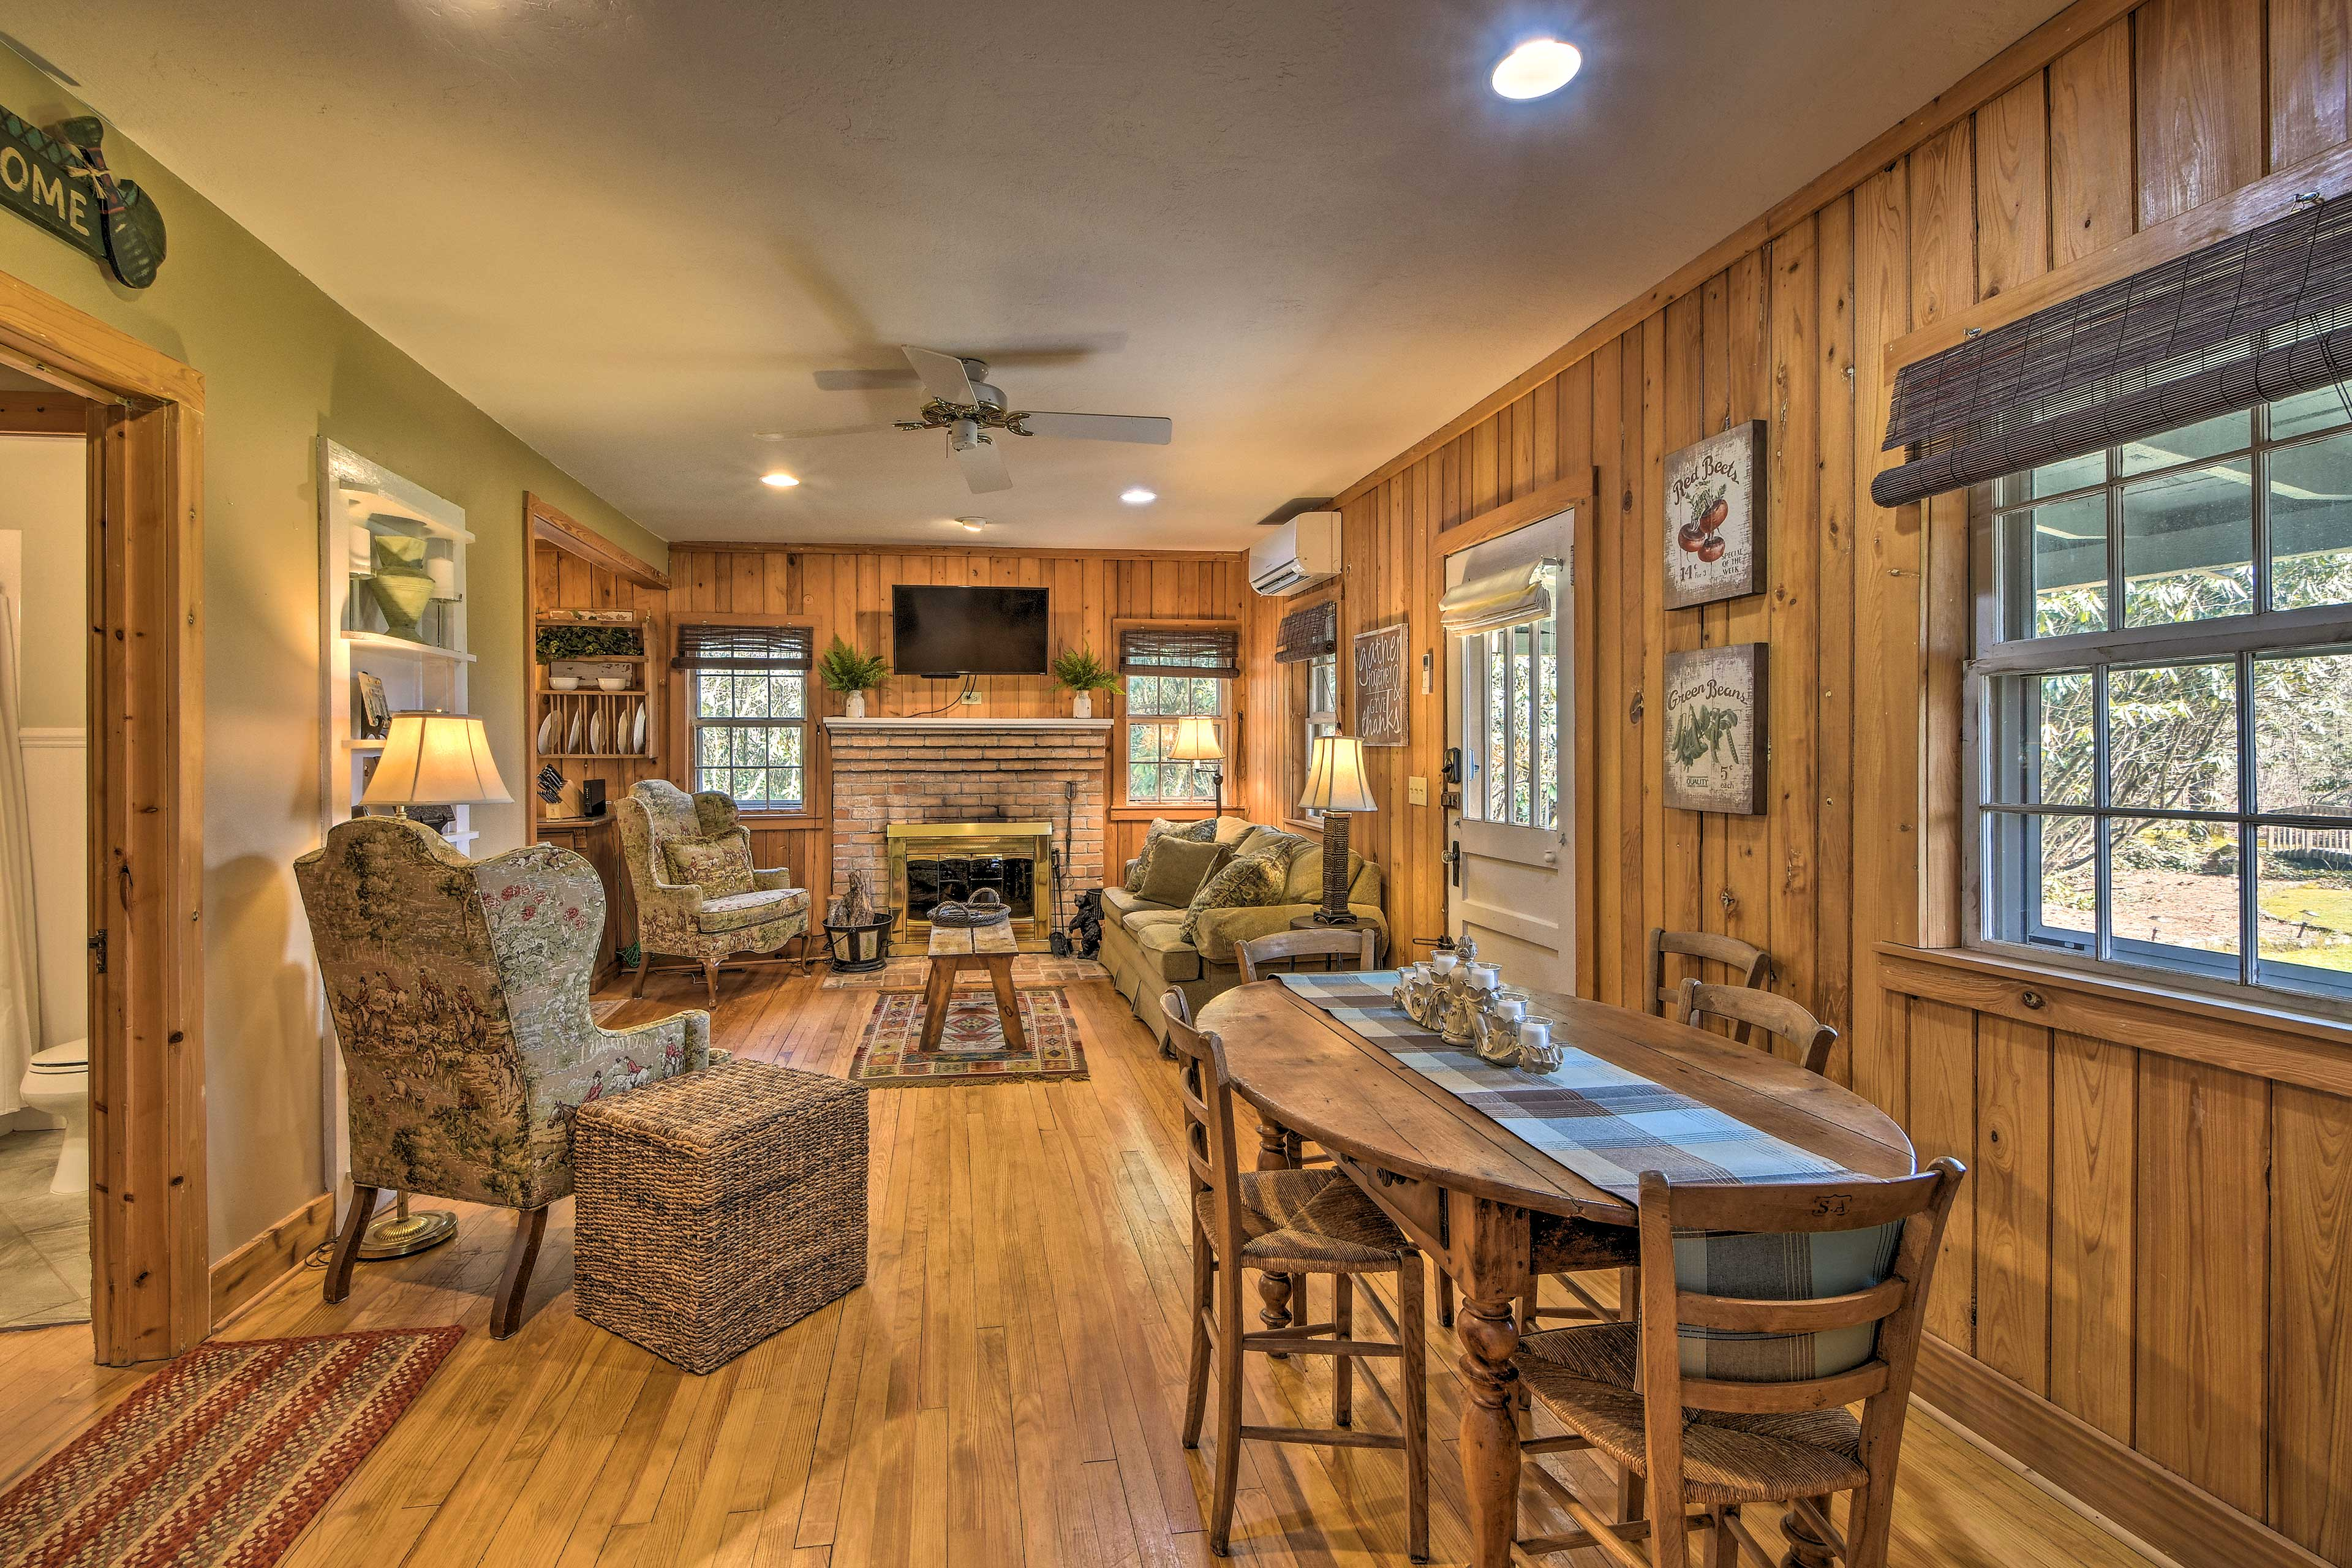 Rustic wood walls welcome you inside the cottage.